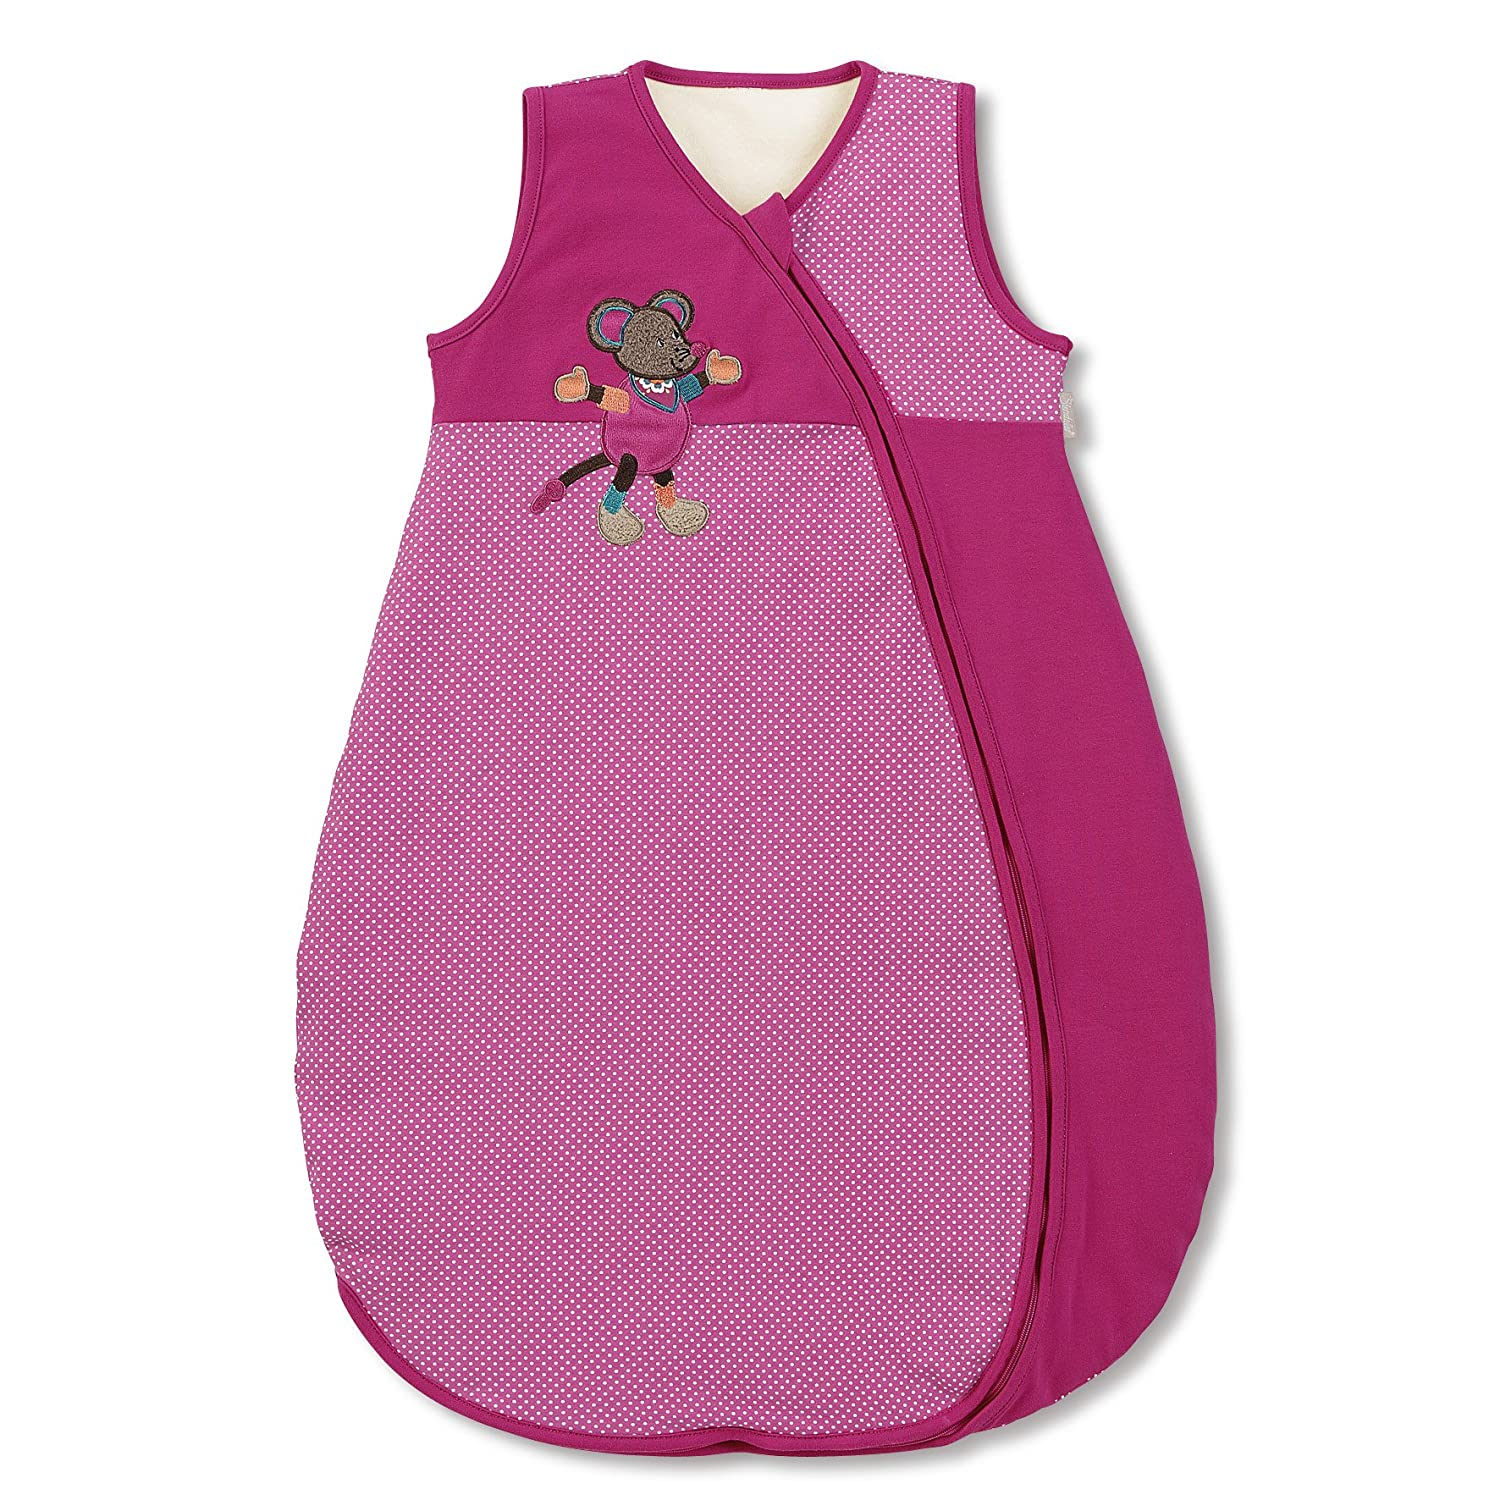 bb7f741f9477 Amazon.com  Sterntaler Sleeping Bag Jersey Mabel Multicoloured  Baby